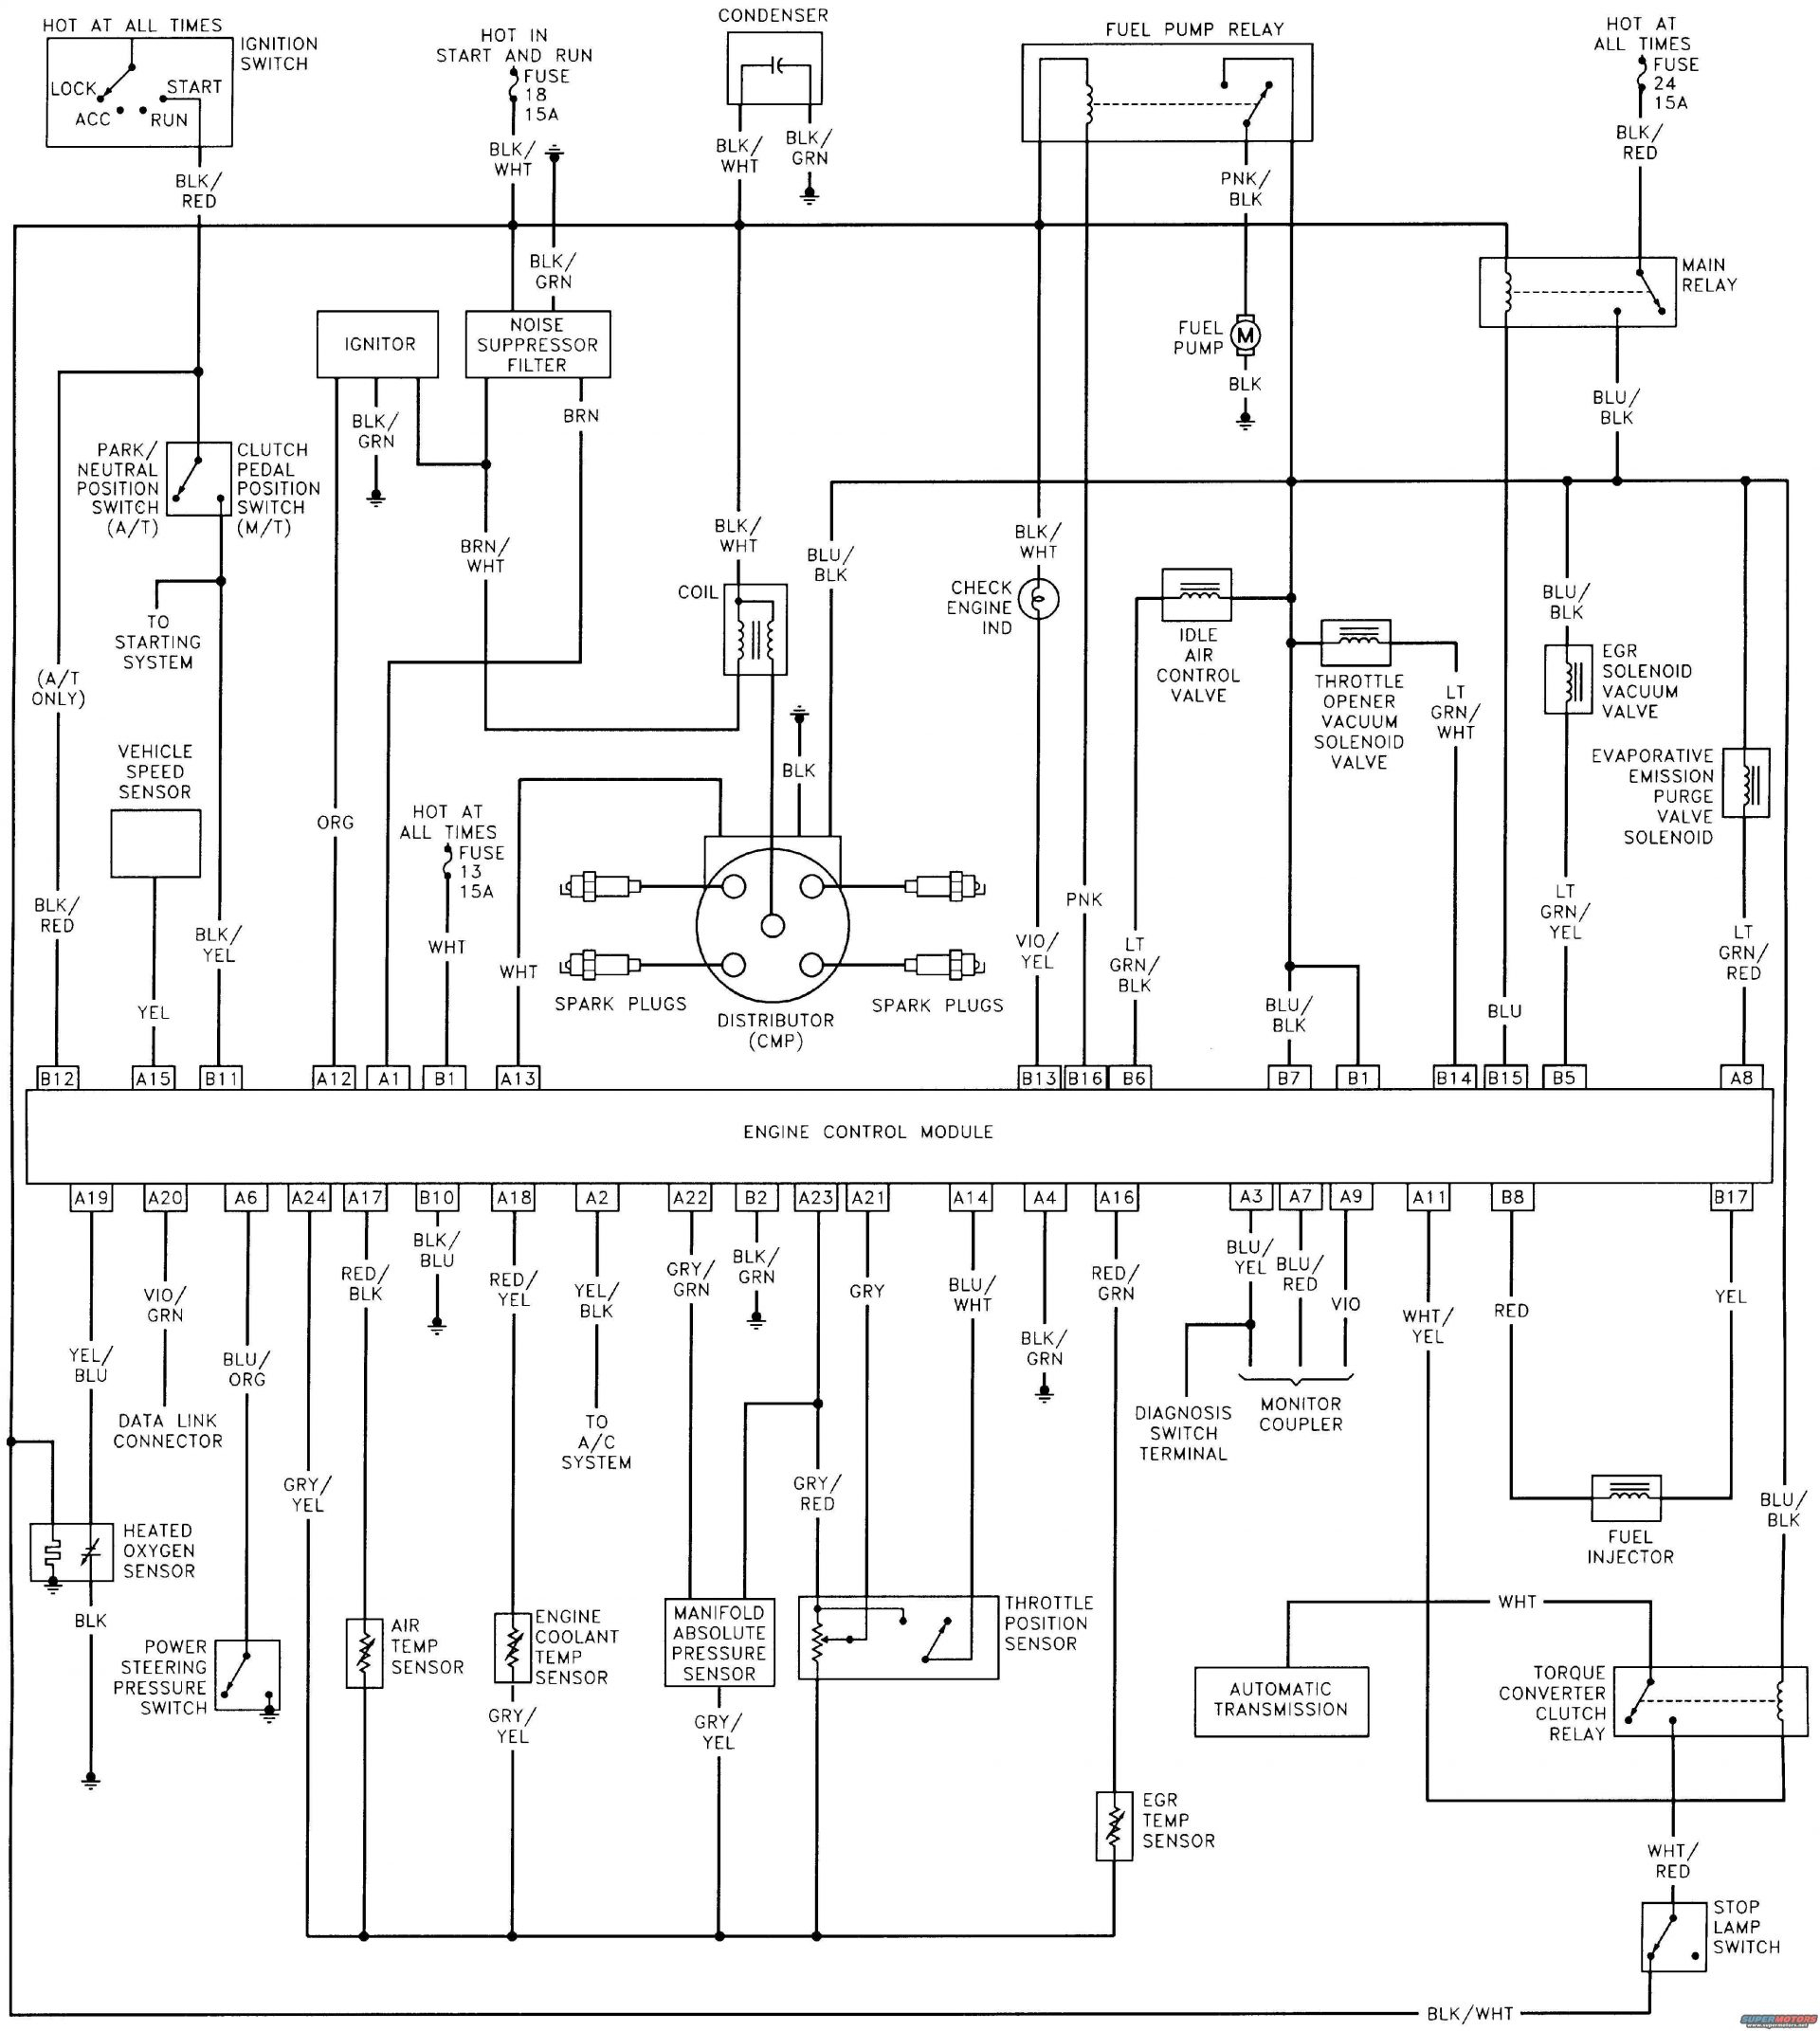 Toyota Alternator Wiring Diagram from wholefoodsonabudget.com